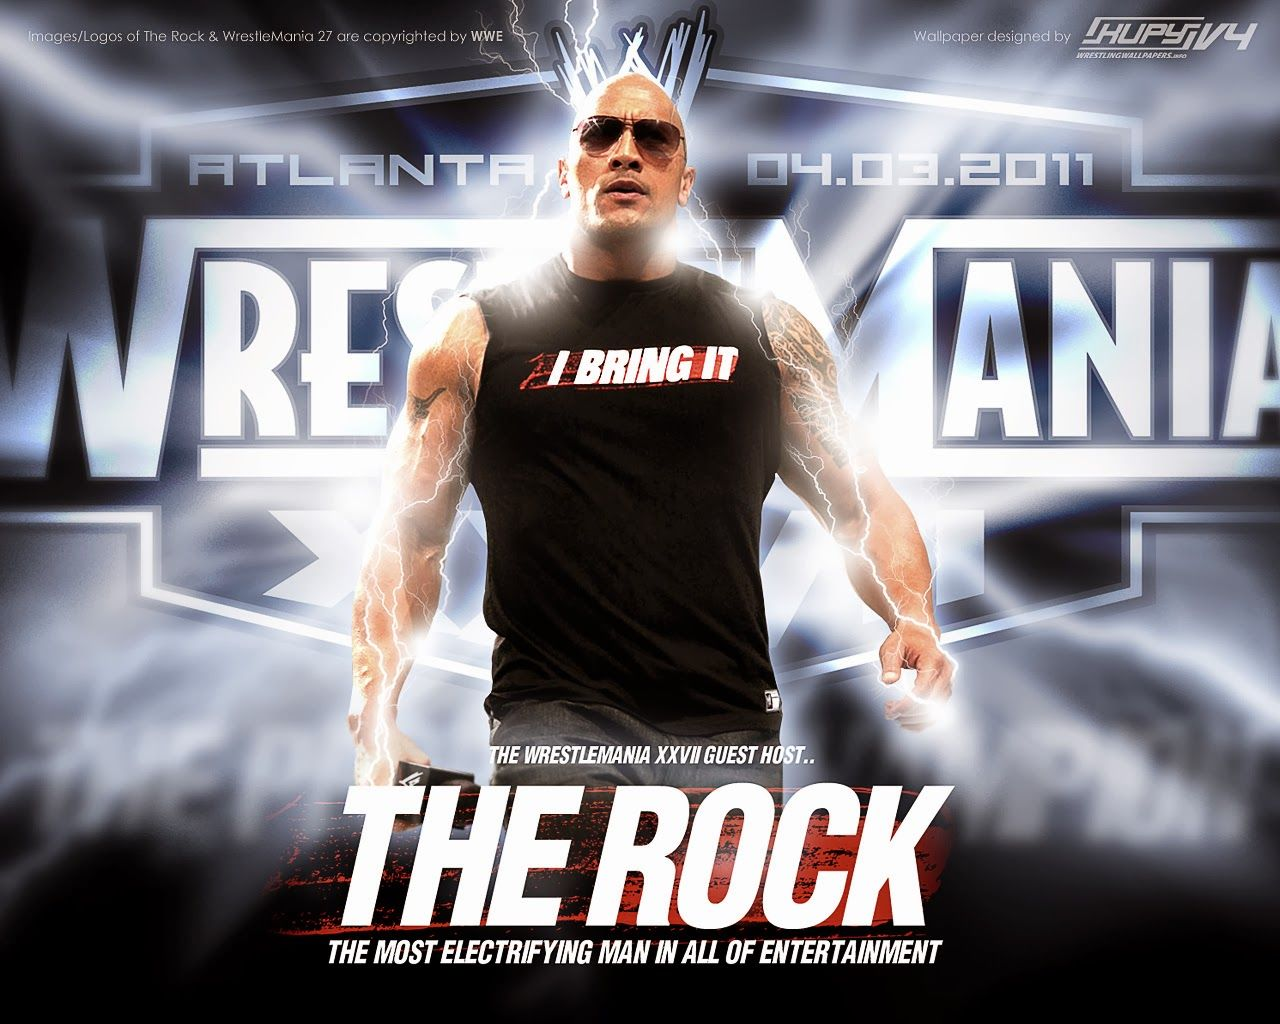 The Rock Hd Wallpapers Free Download FREE ALL HD WALLPAPERS 800x600 Wwe Images 58